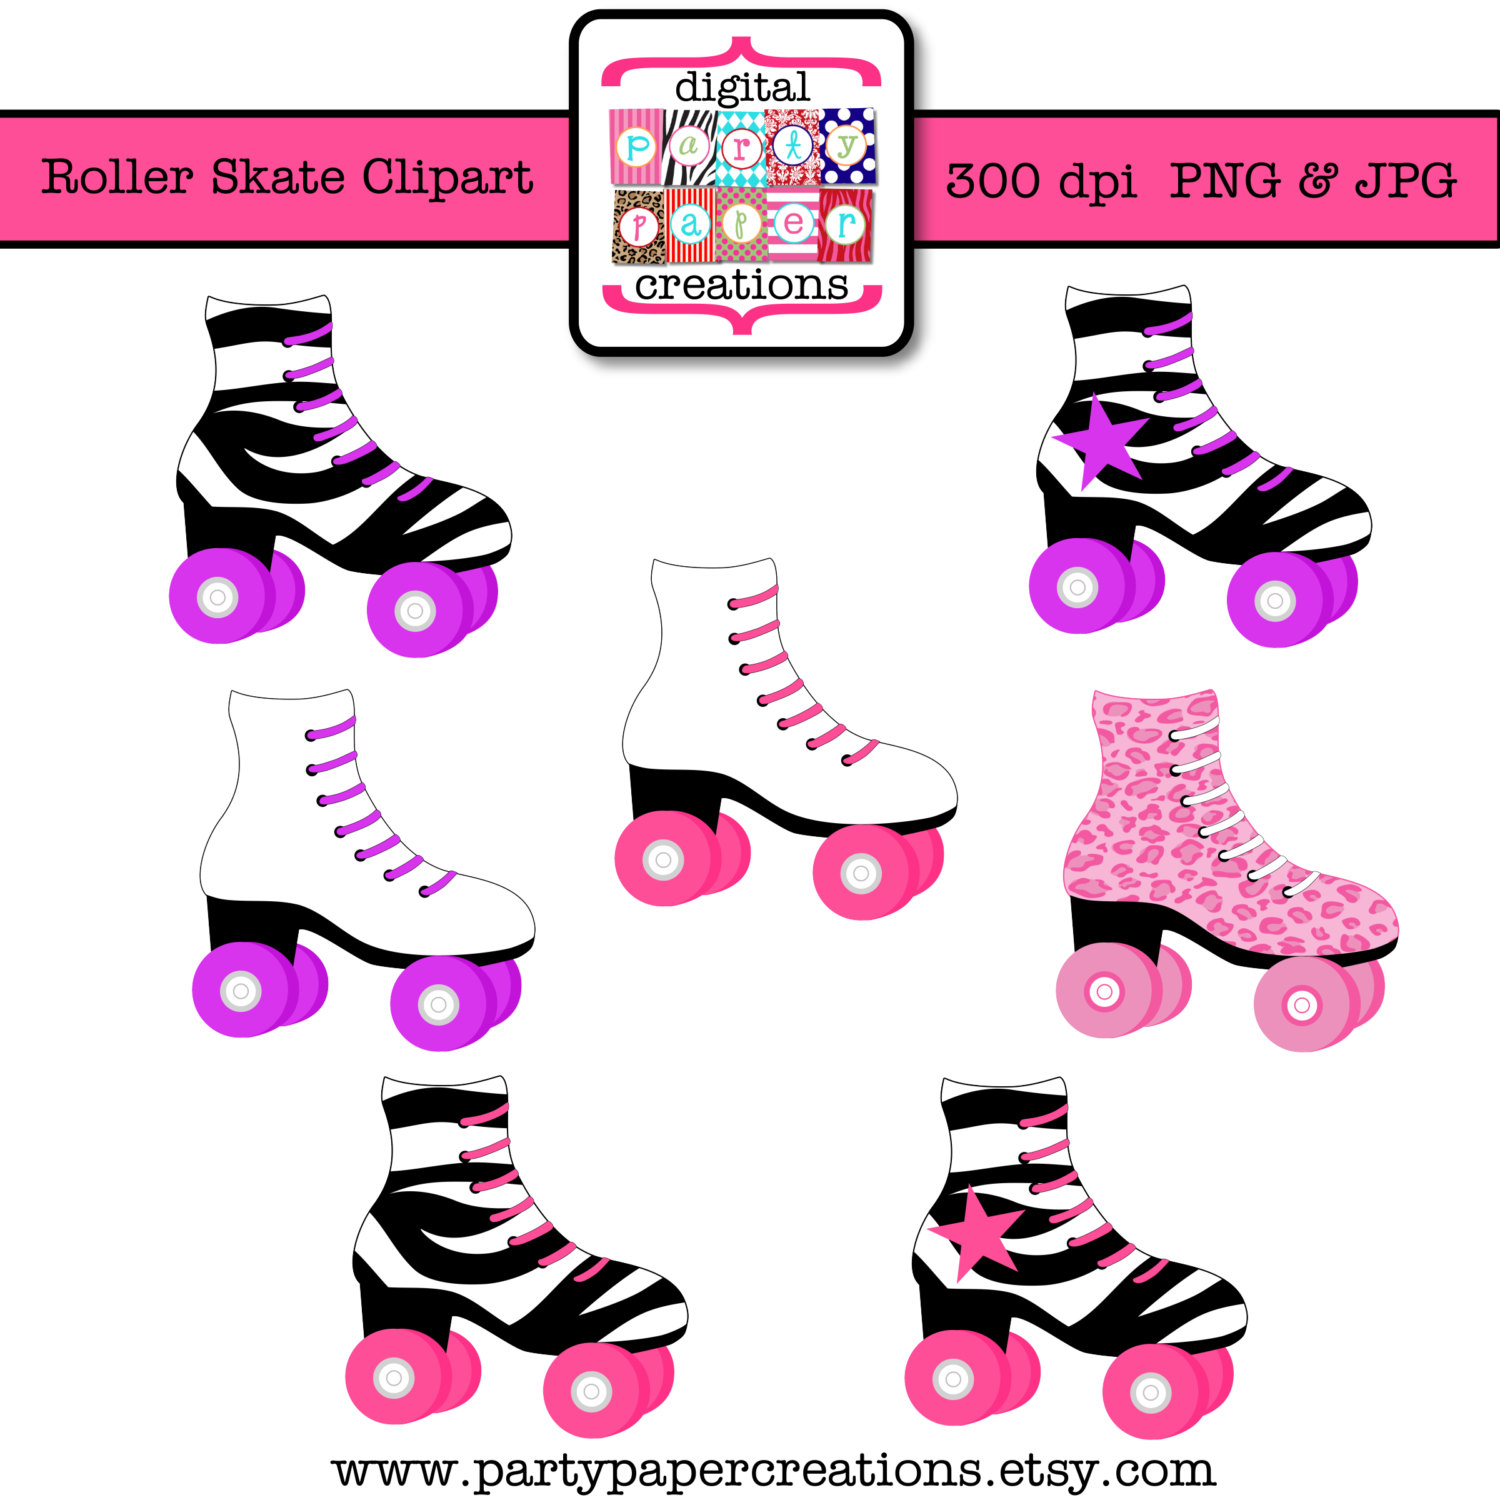 Party clipart roller skate Print Leopard Skate Clipart Skating